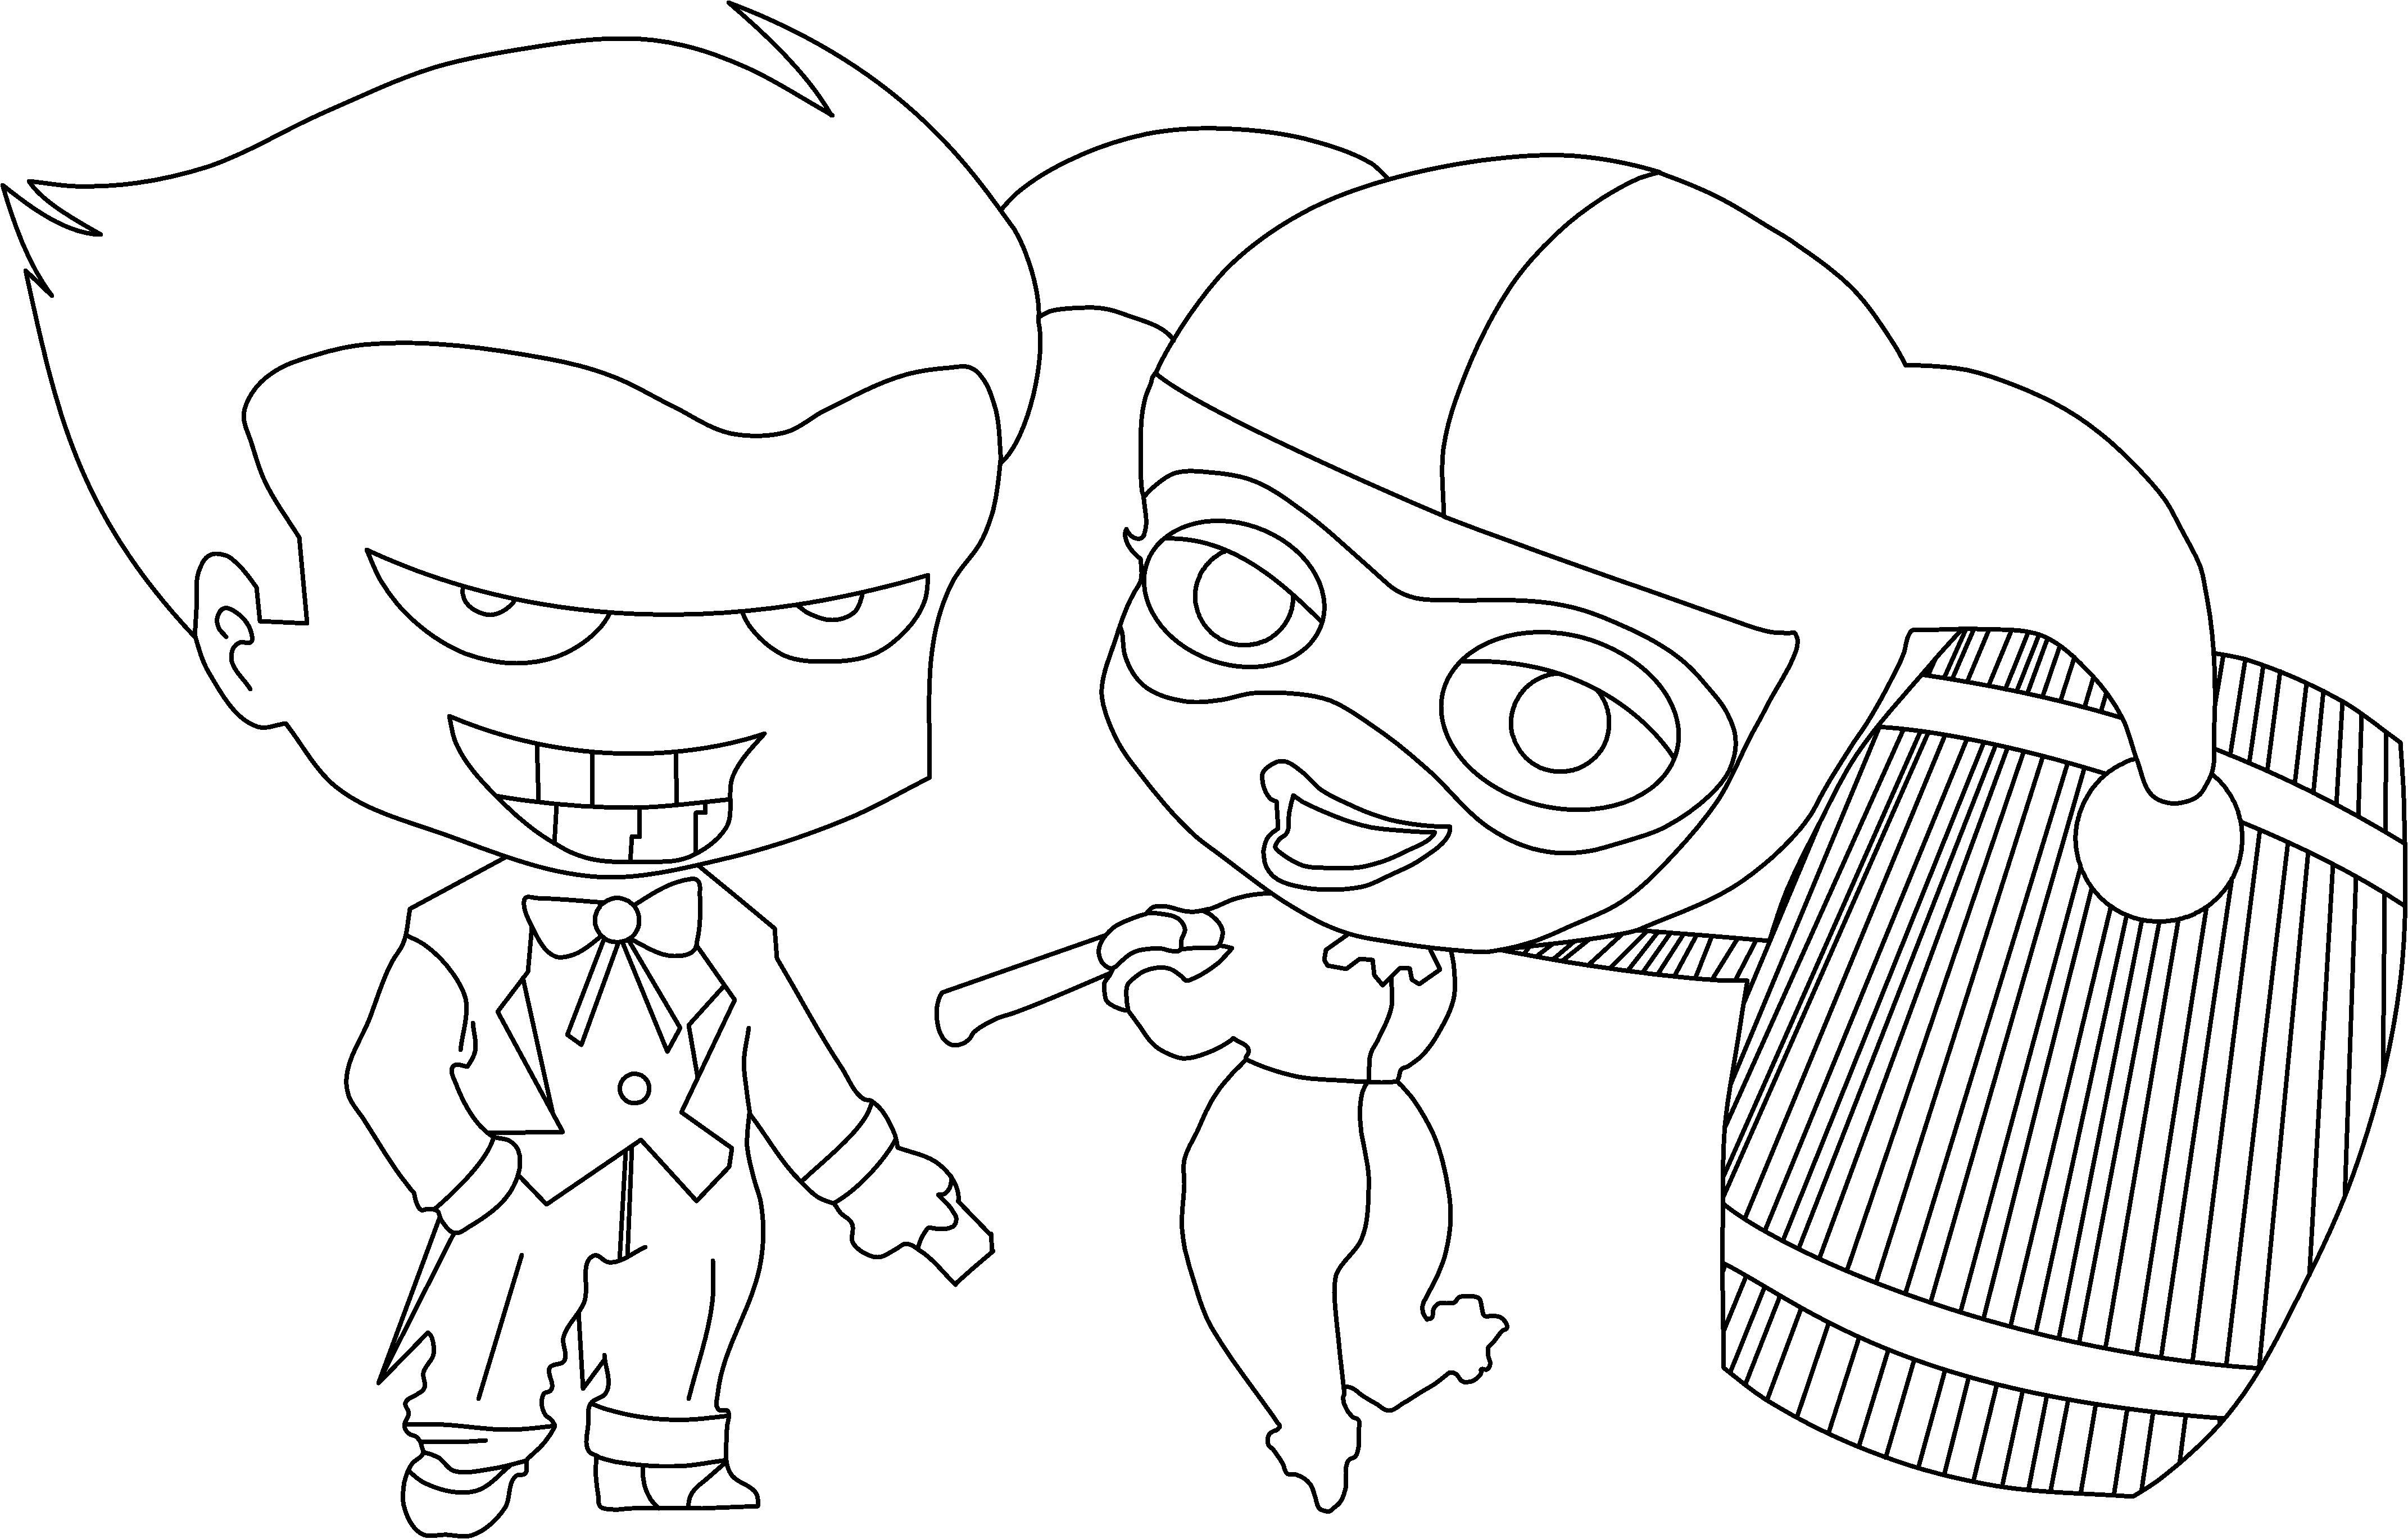 outline harley quinn coloring sheets get this harley quinn coloring pages to print 5npq outline harley coloring sheets quinn